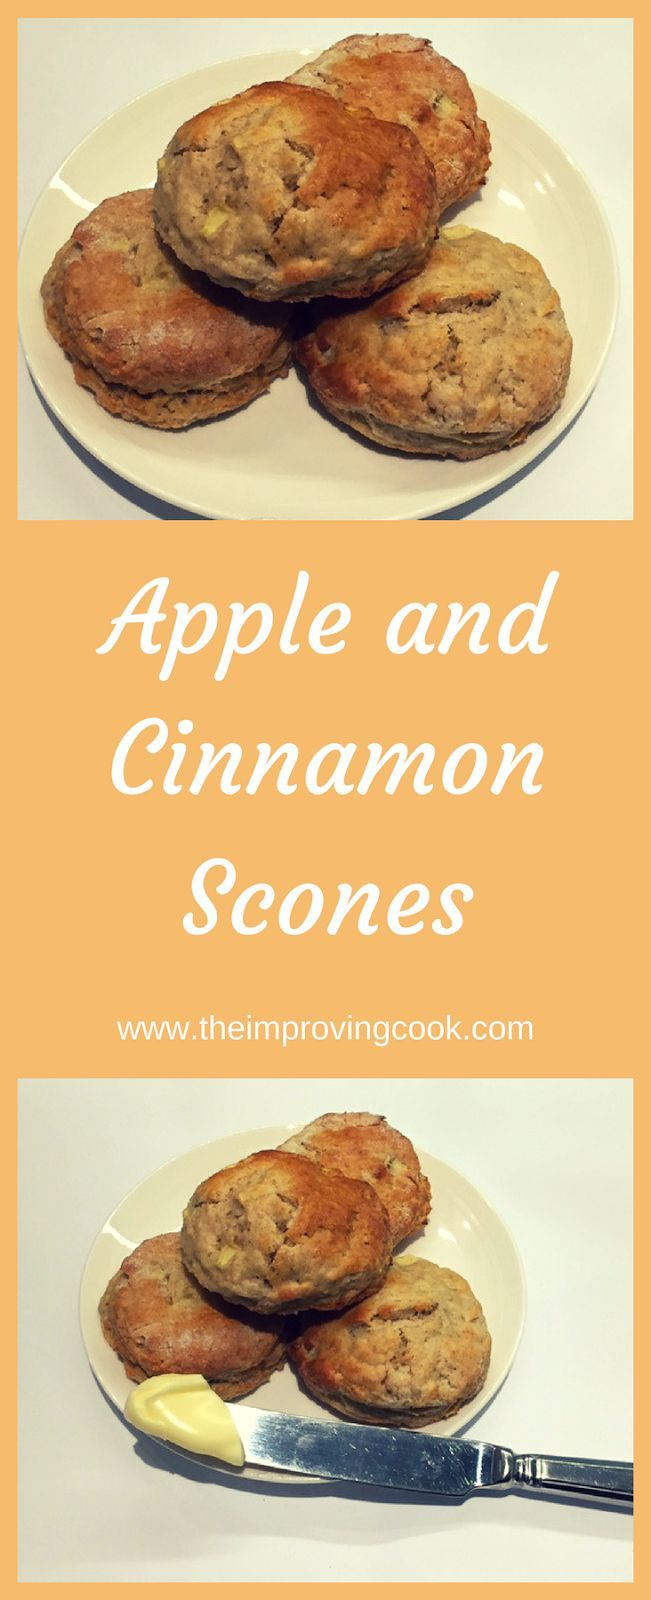 The Improving Cook Apple Cinnamon Scones recipe. Gorgeous moist cinnamon scones with little chunks of apple through them.  Must eat warm with lashings of butter! Perfect for breakfast or afternoon tea, English style.